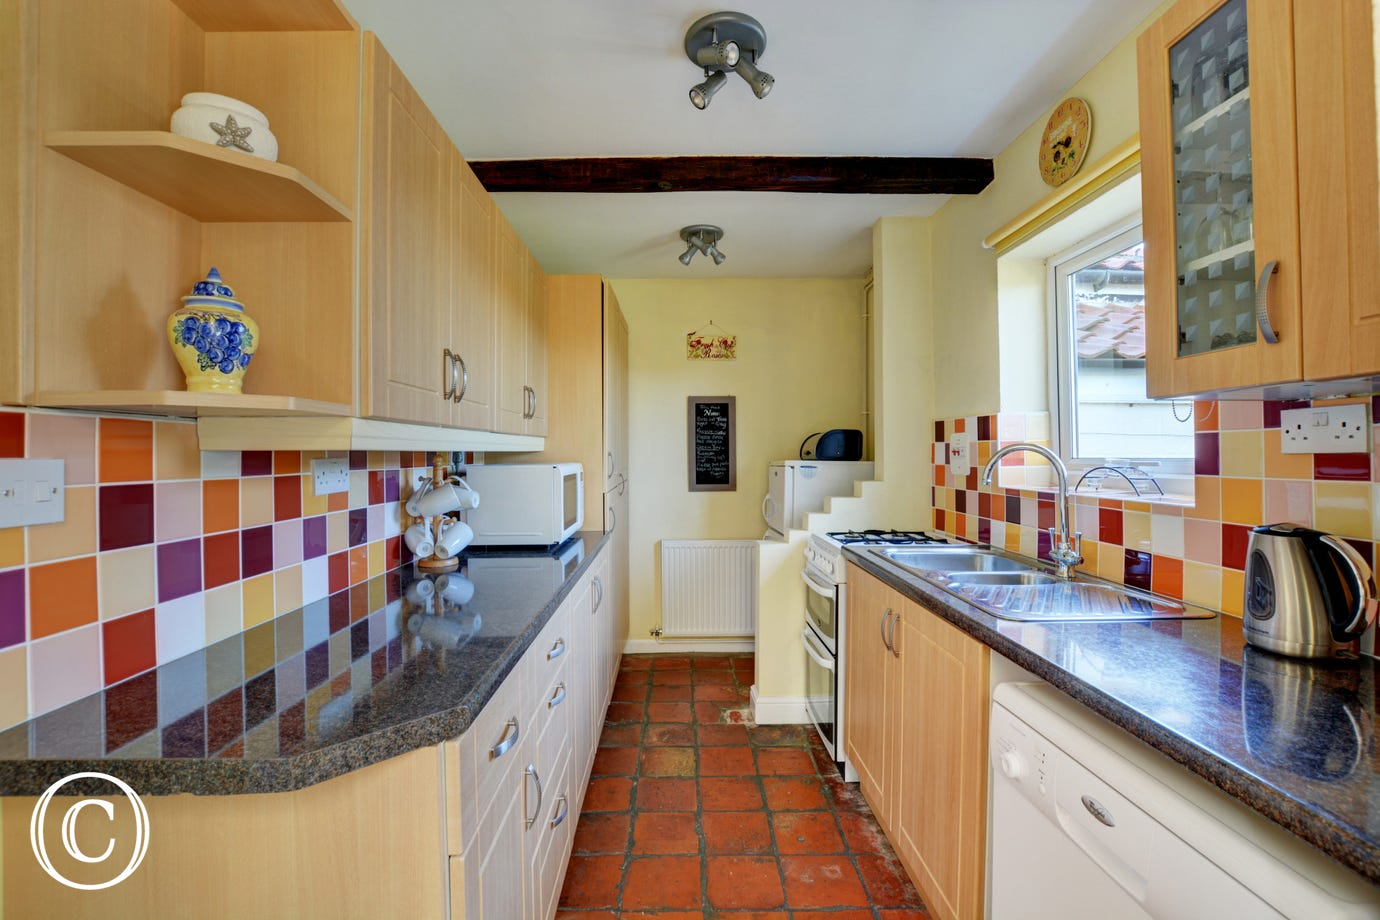 Brightly tiled kitchen